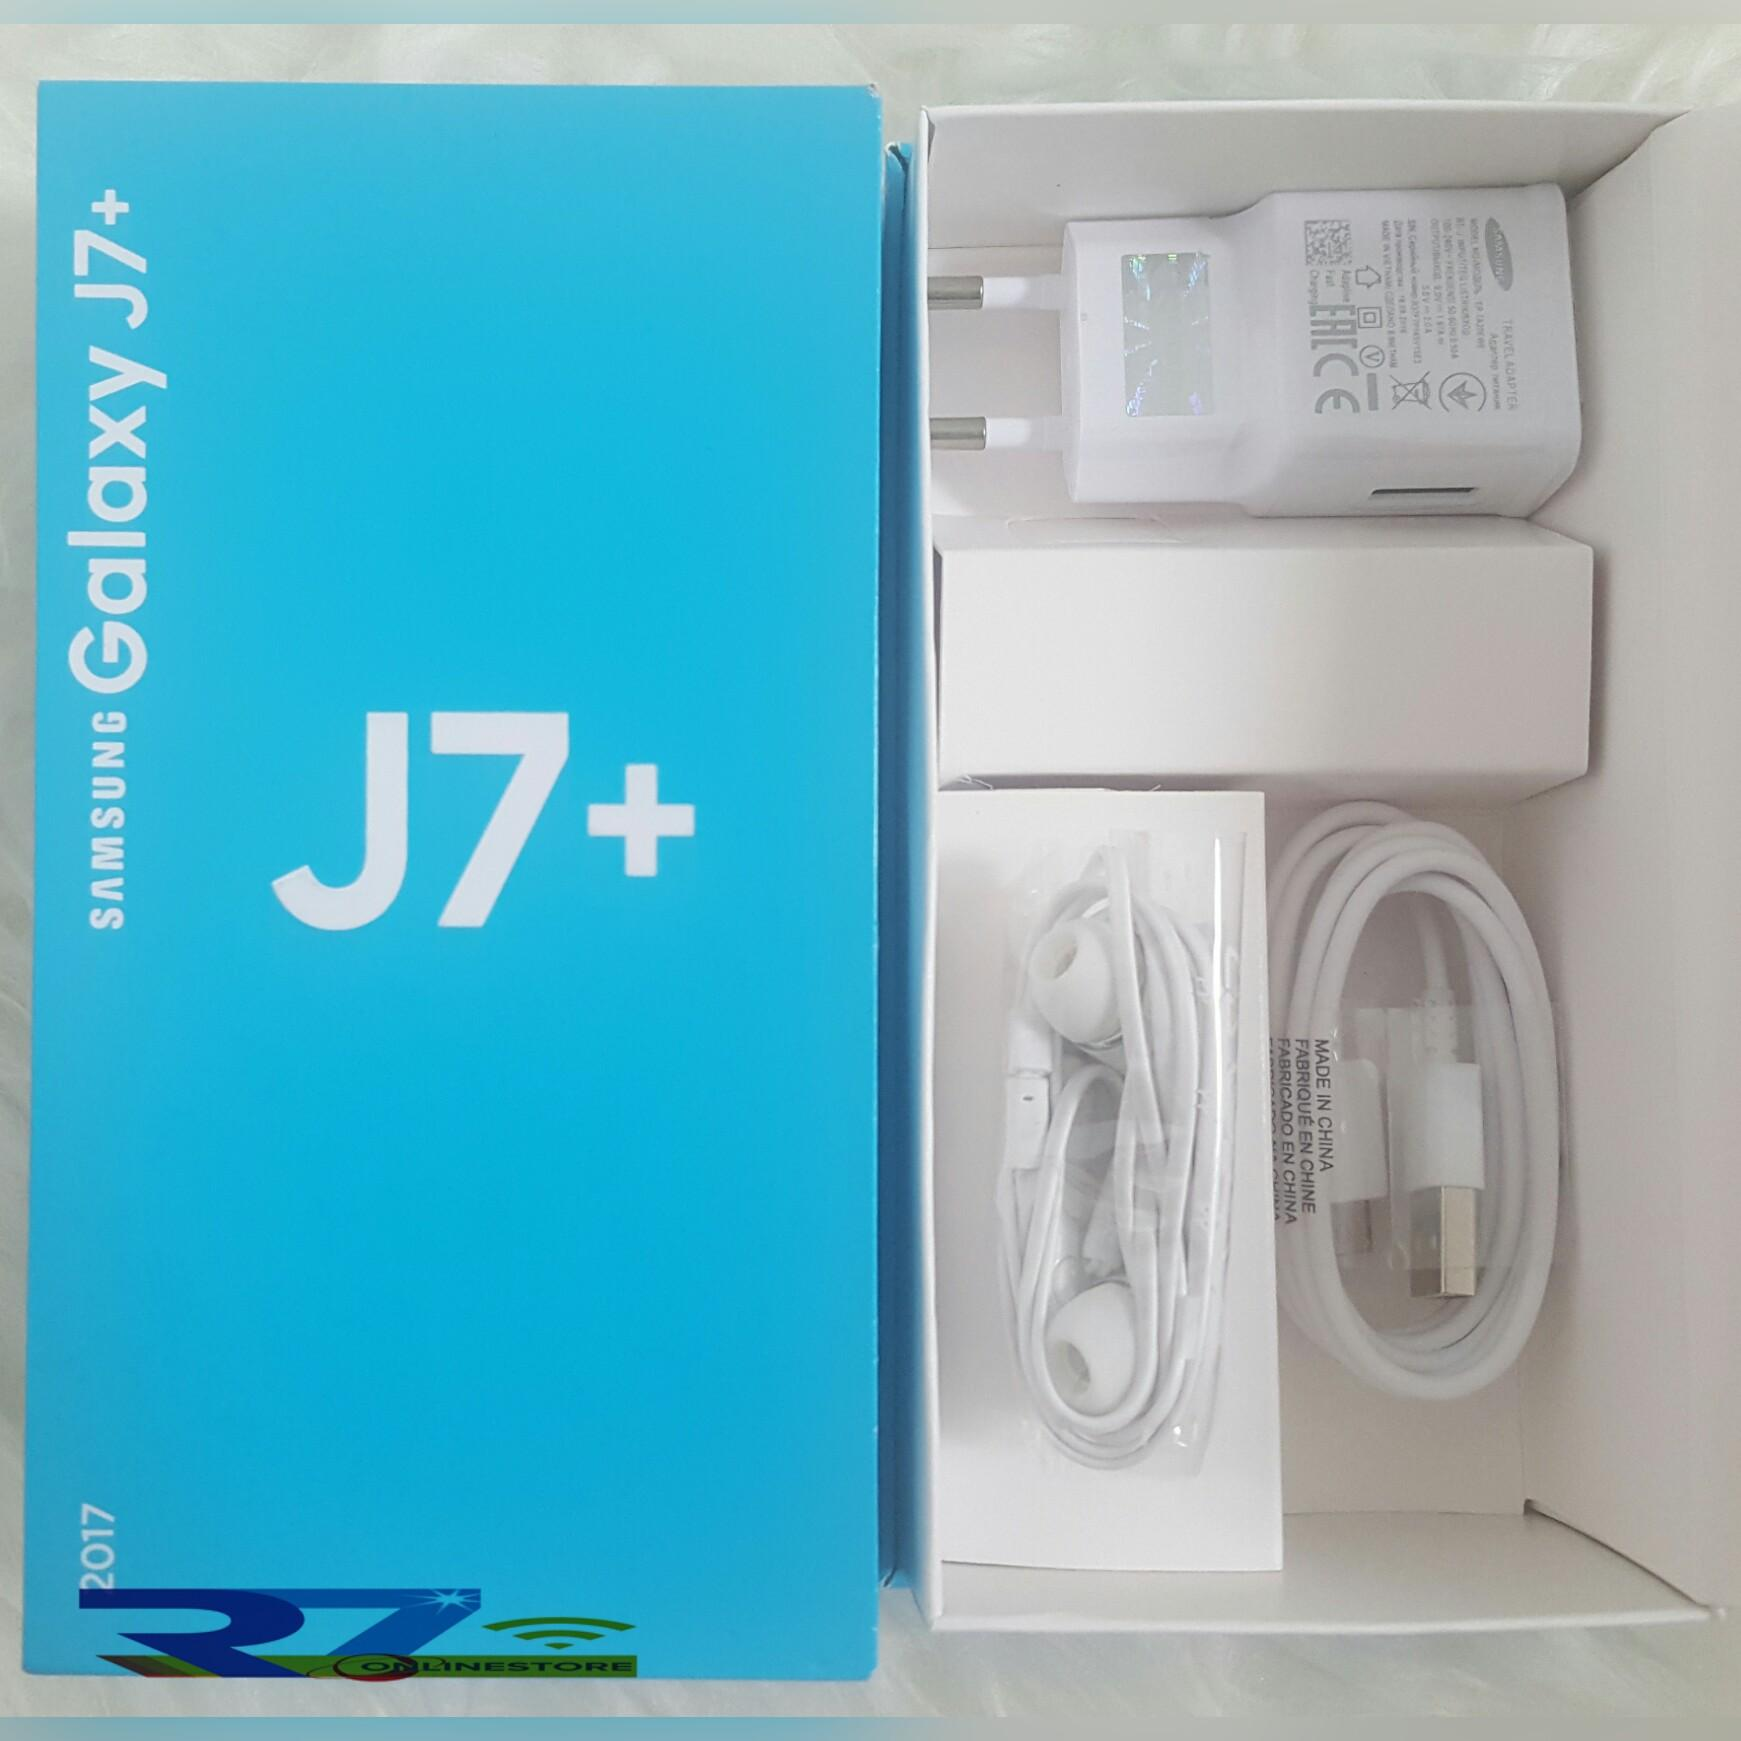 Buy Sell Cheapest Samsung 2017 7 Best Quality Product Deals Galaxy A5 Garansi Resmi Sein Indonesia Box Dus Kotak J7 Full Set